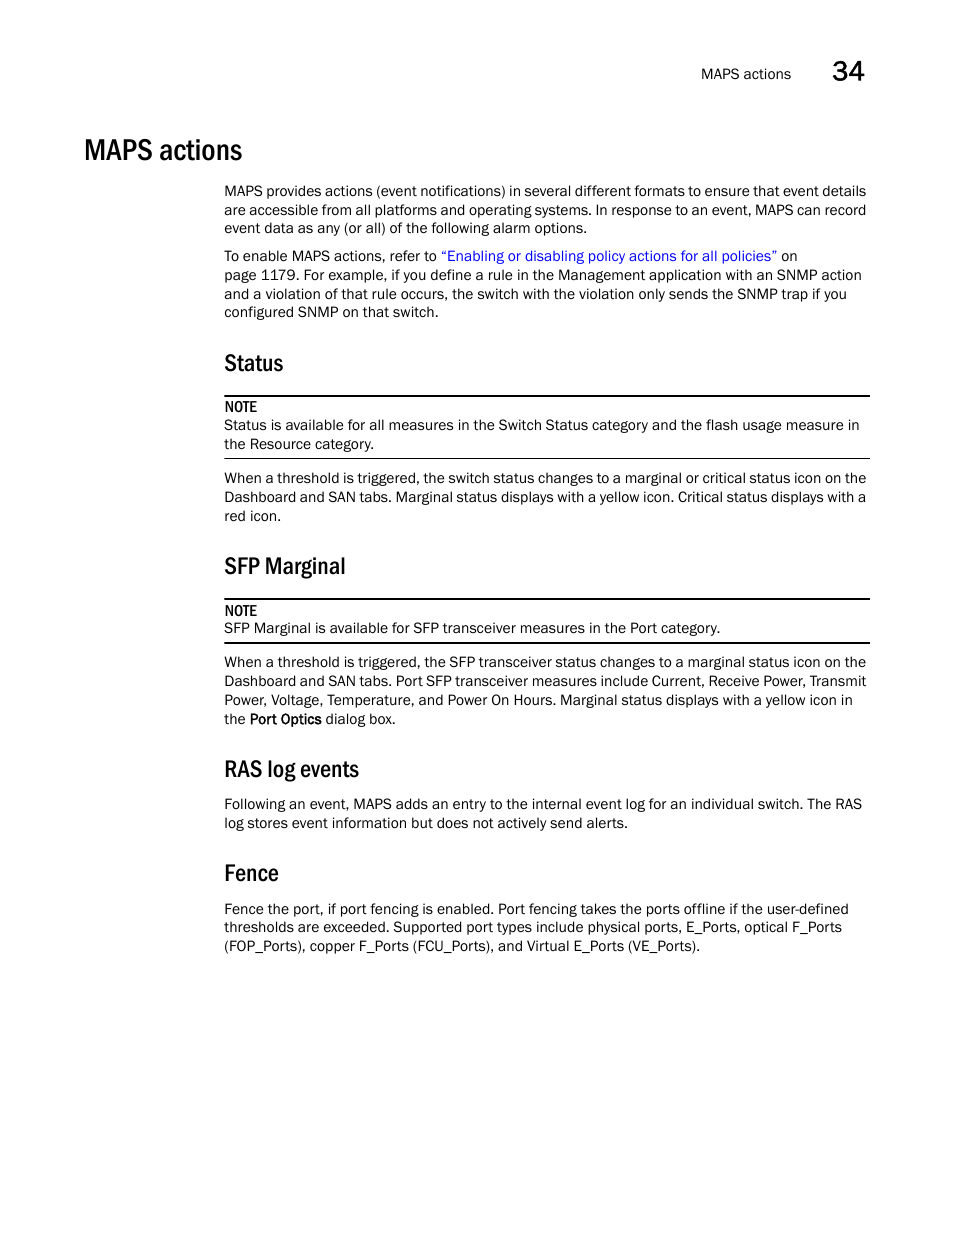 Maps actions, Fence, Maps actions 7 | Brocade Network Advisor SAN User  Manual v12.1.0 User Manual | Page 1224 / 1690